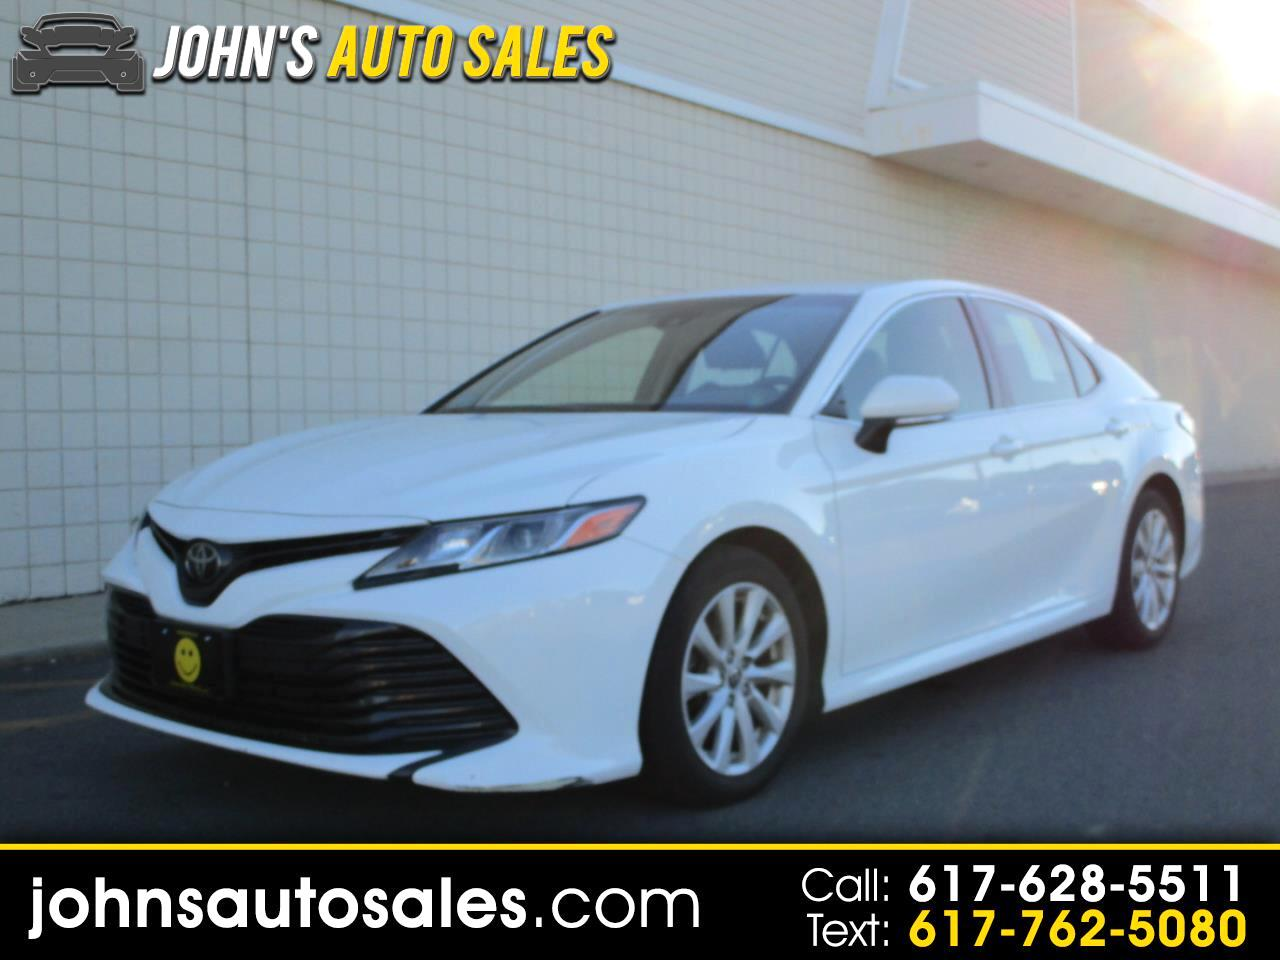 Toyota Camry 2014.5 4dr Sdn I4 Auto LE (Natl) 2018